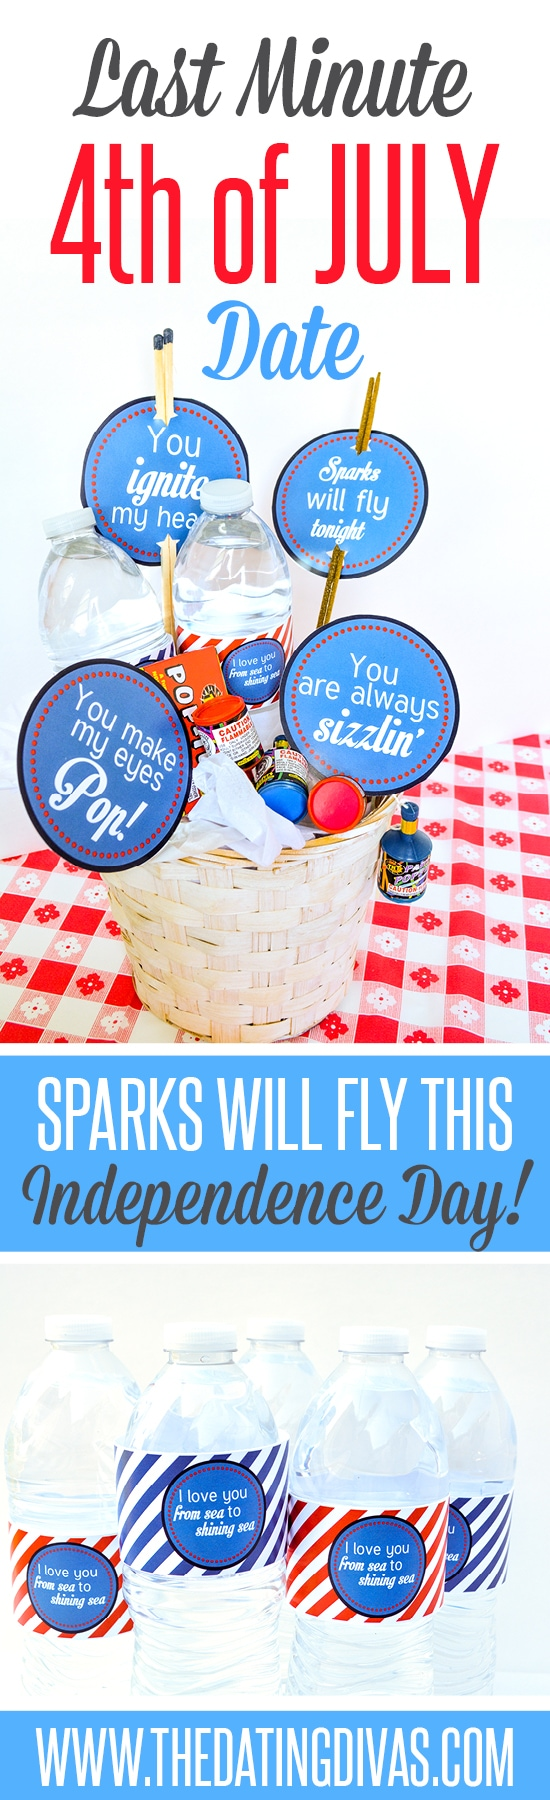 Cute idea for a 4th of July date!